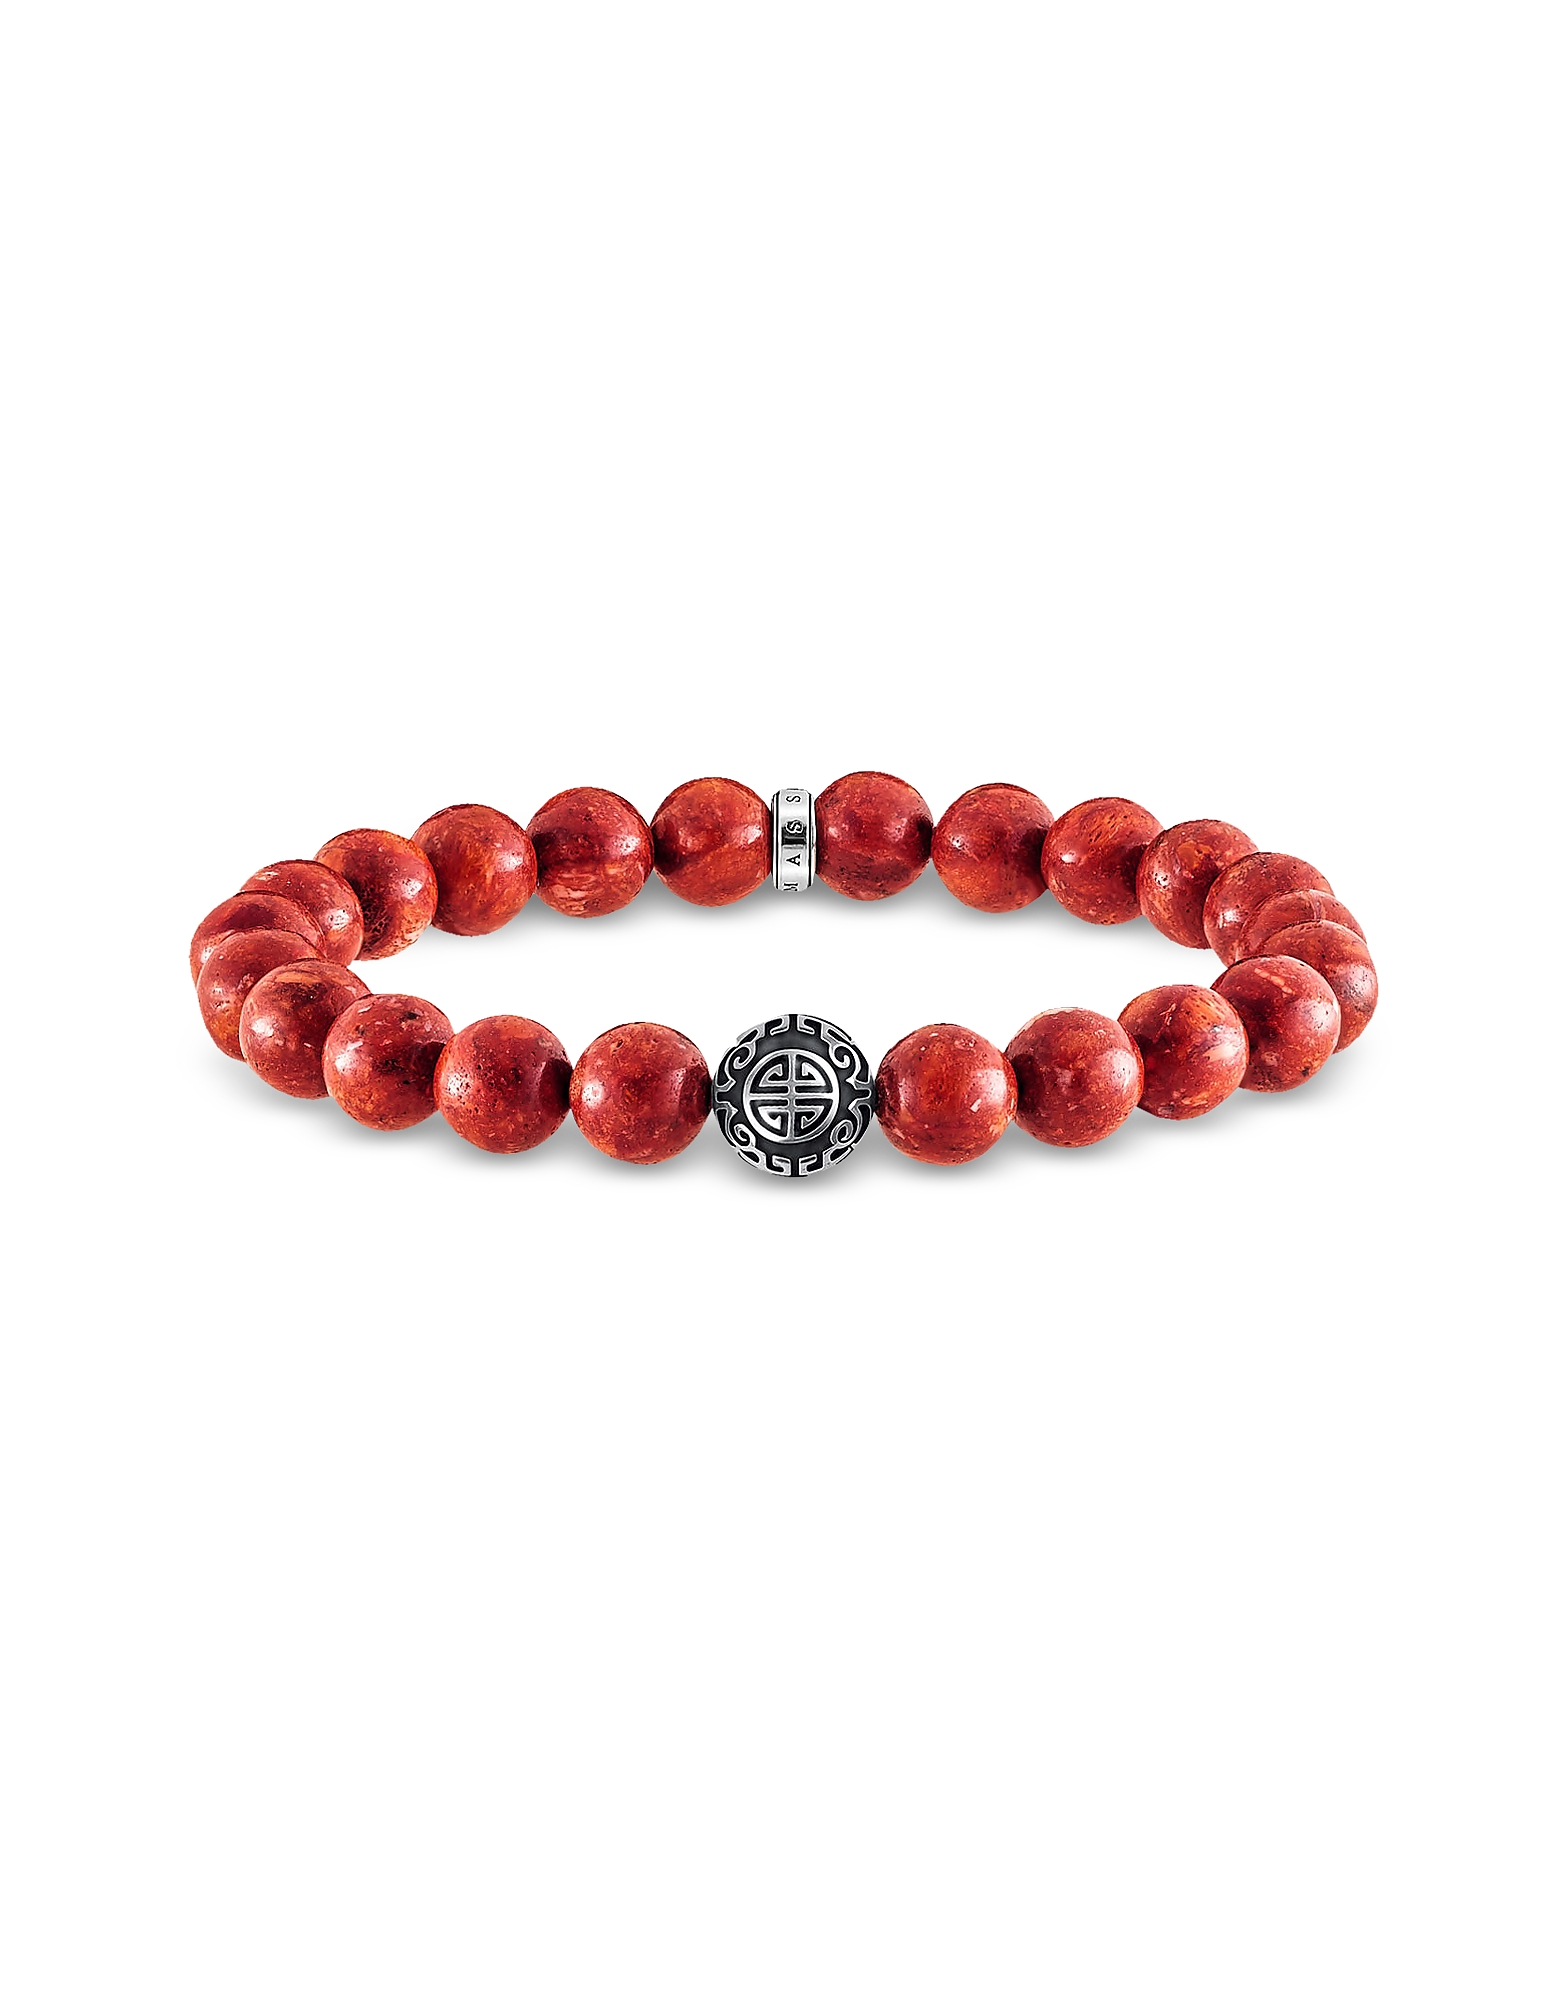 Thomas Sabo Bracelets, Ethnic Red Sterling Silver and Coral Beads Bracelet